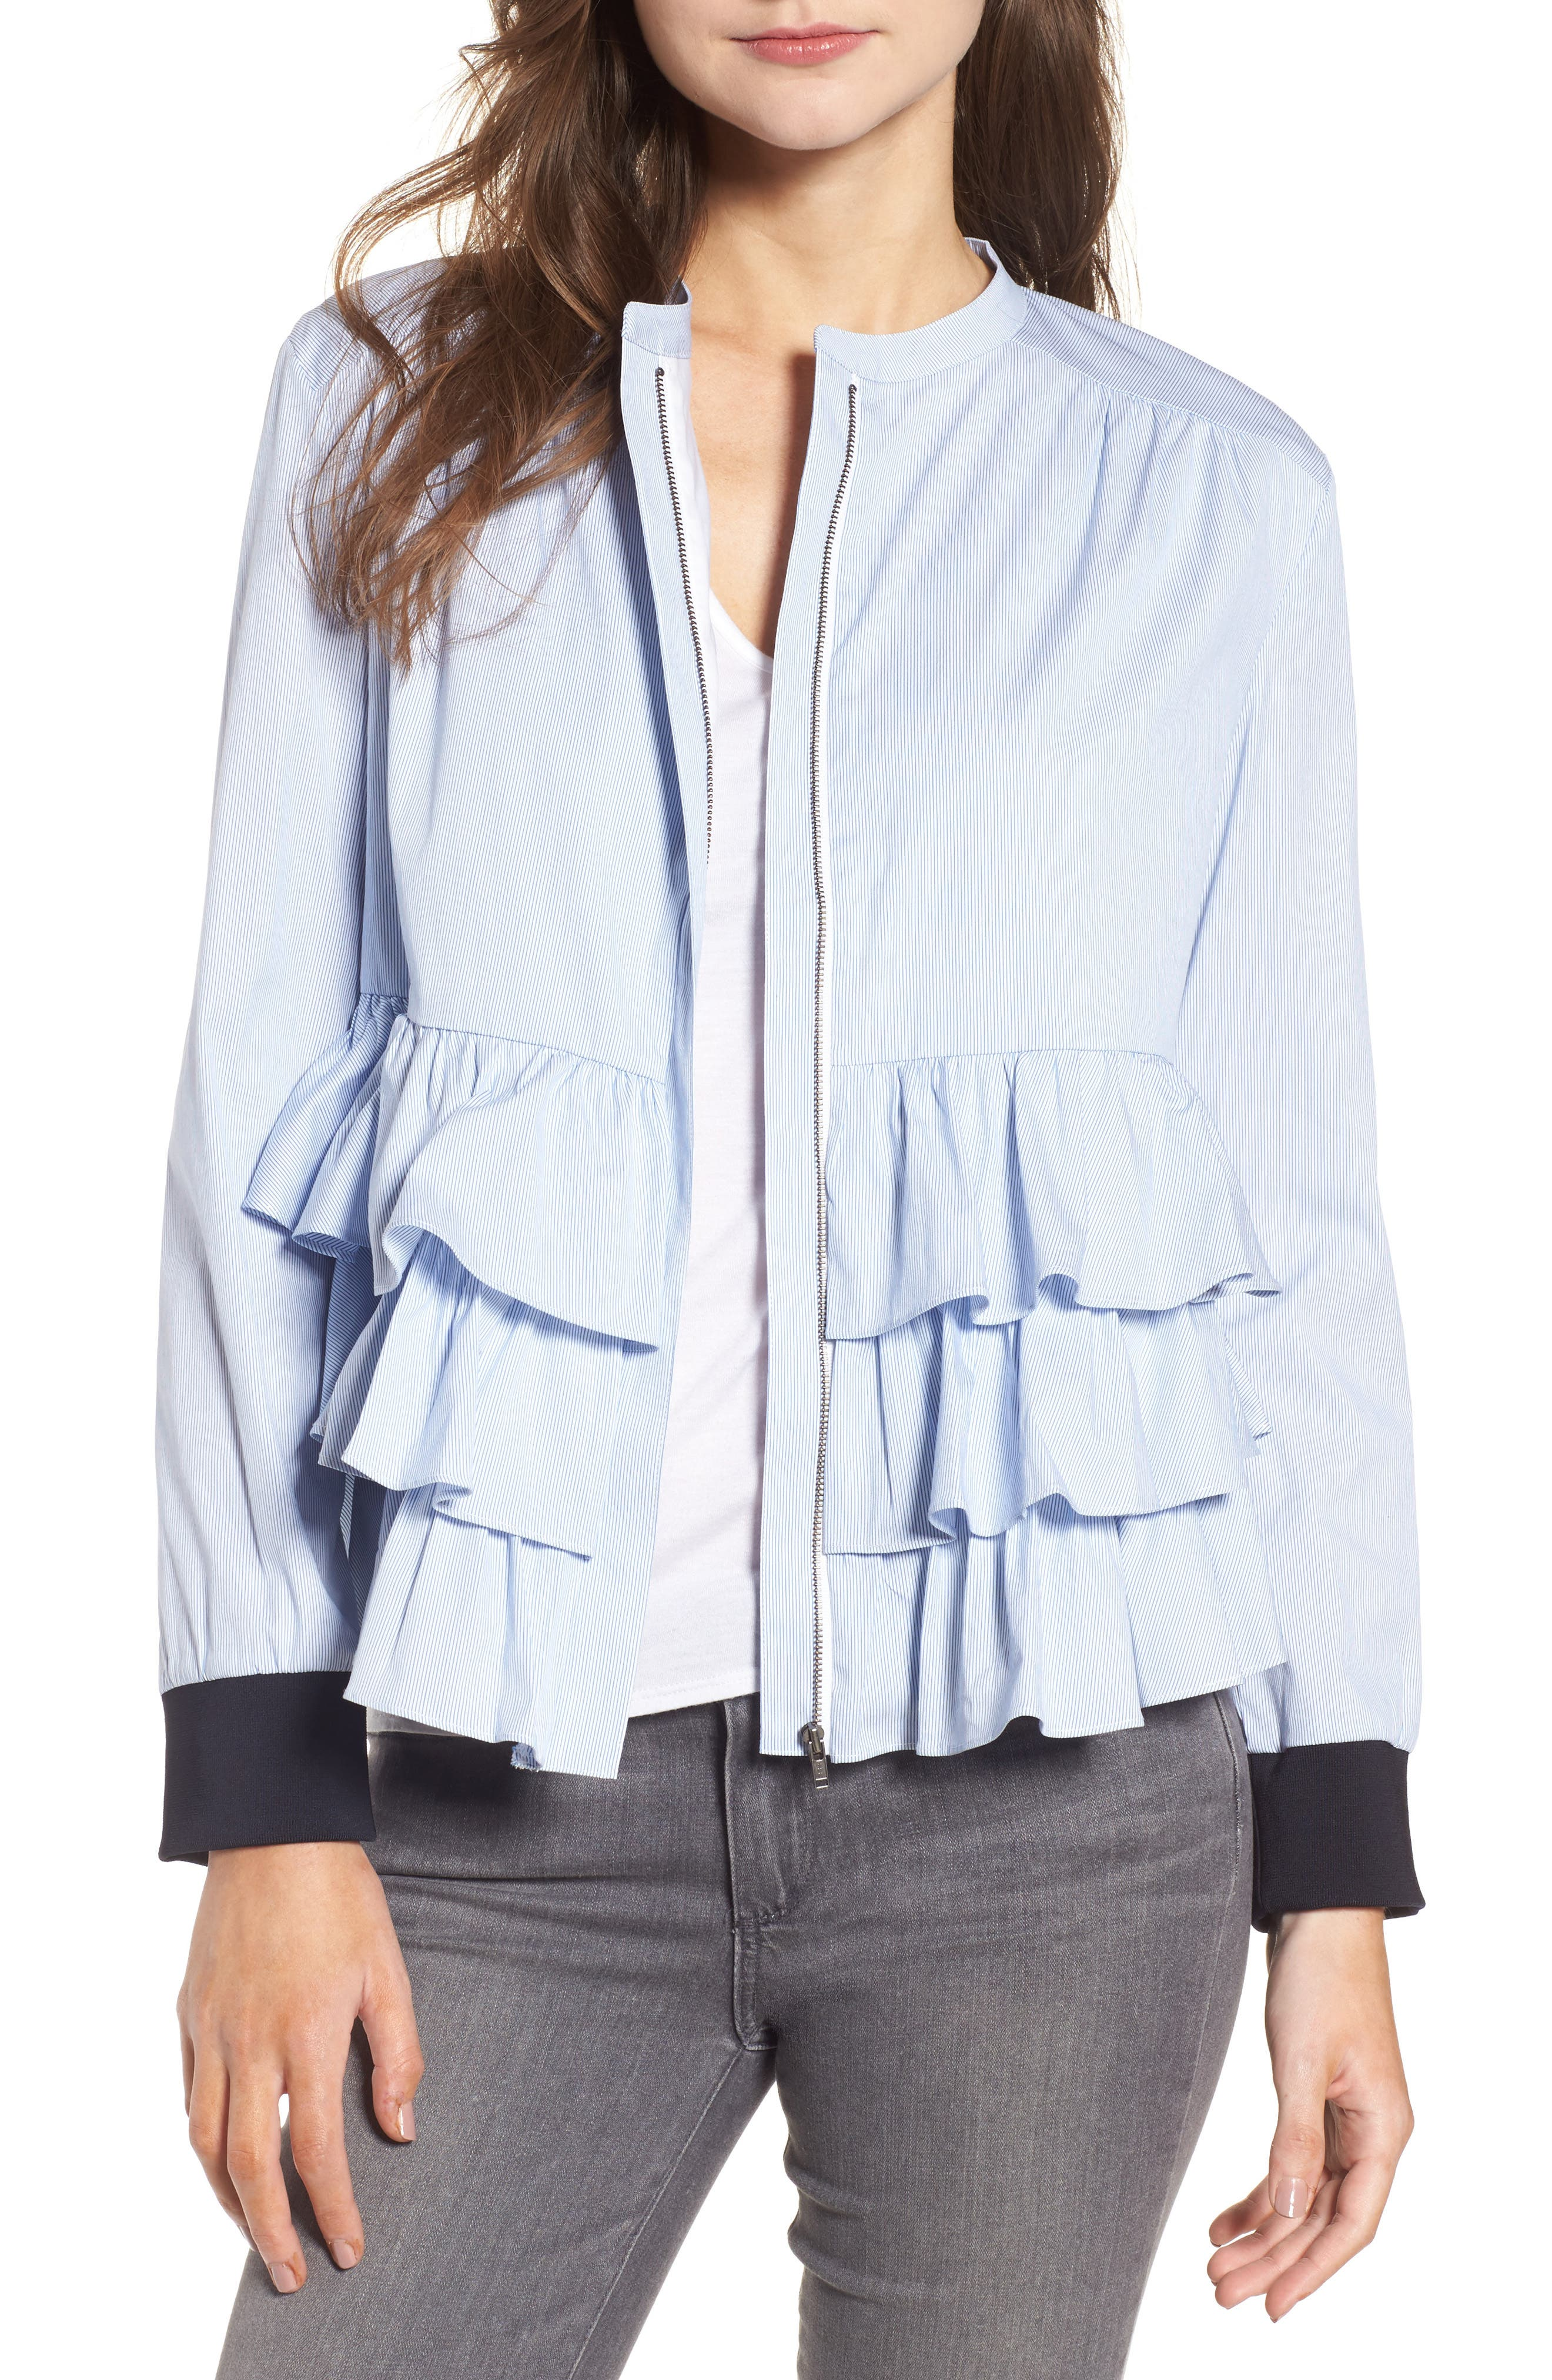 Alternate Image 1 Selected - Chelsea28 Ruffle Jacket